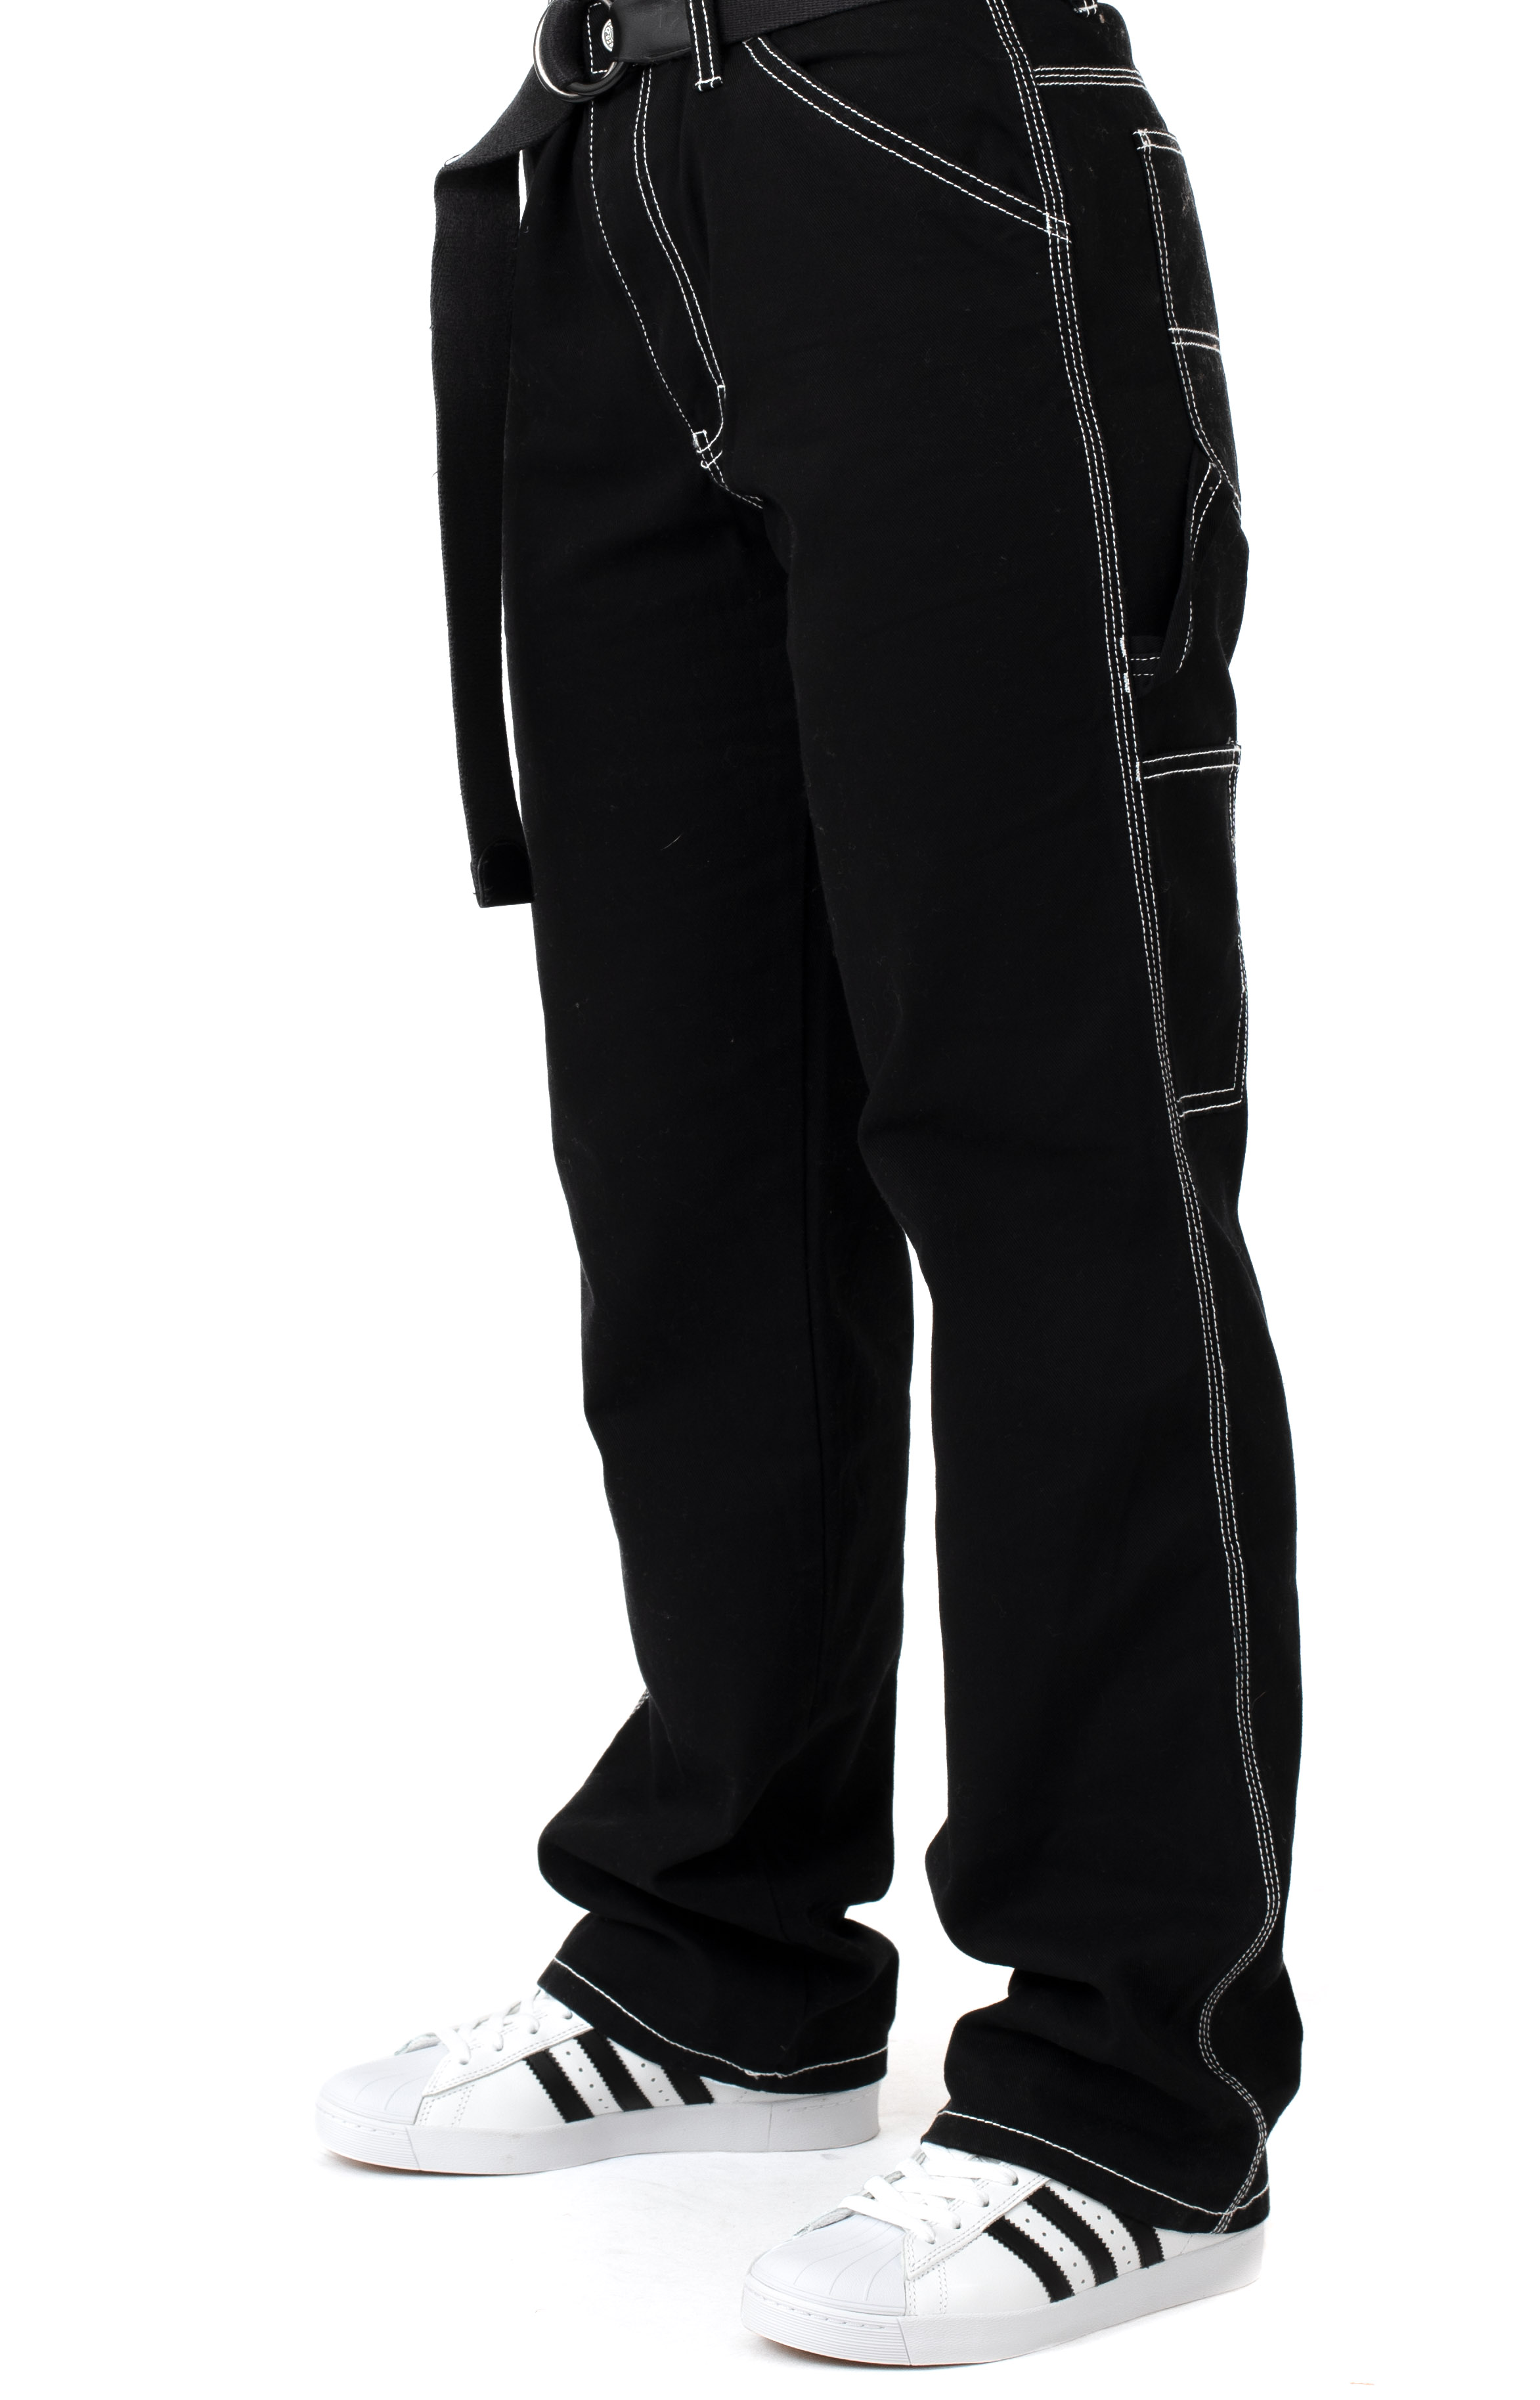 Carpenter Relaxed Fit Pant - Black